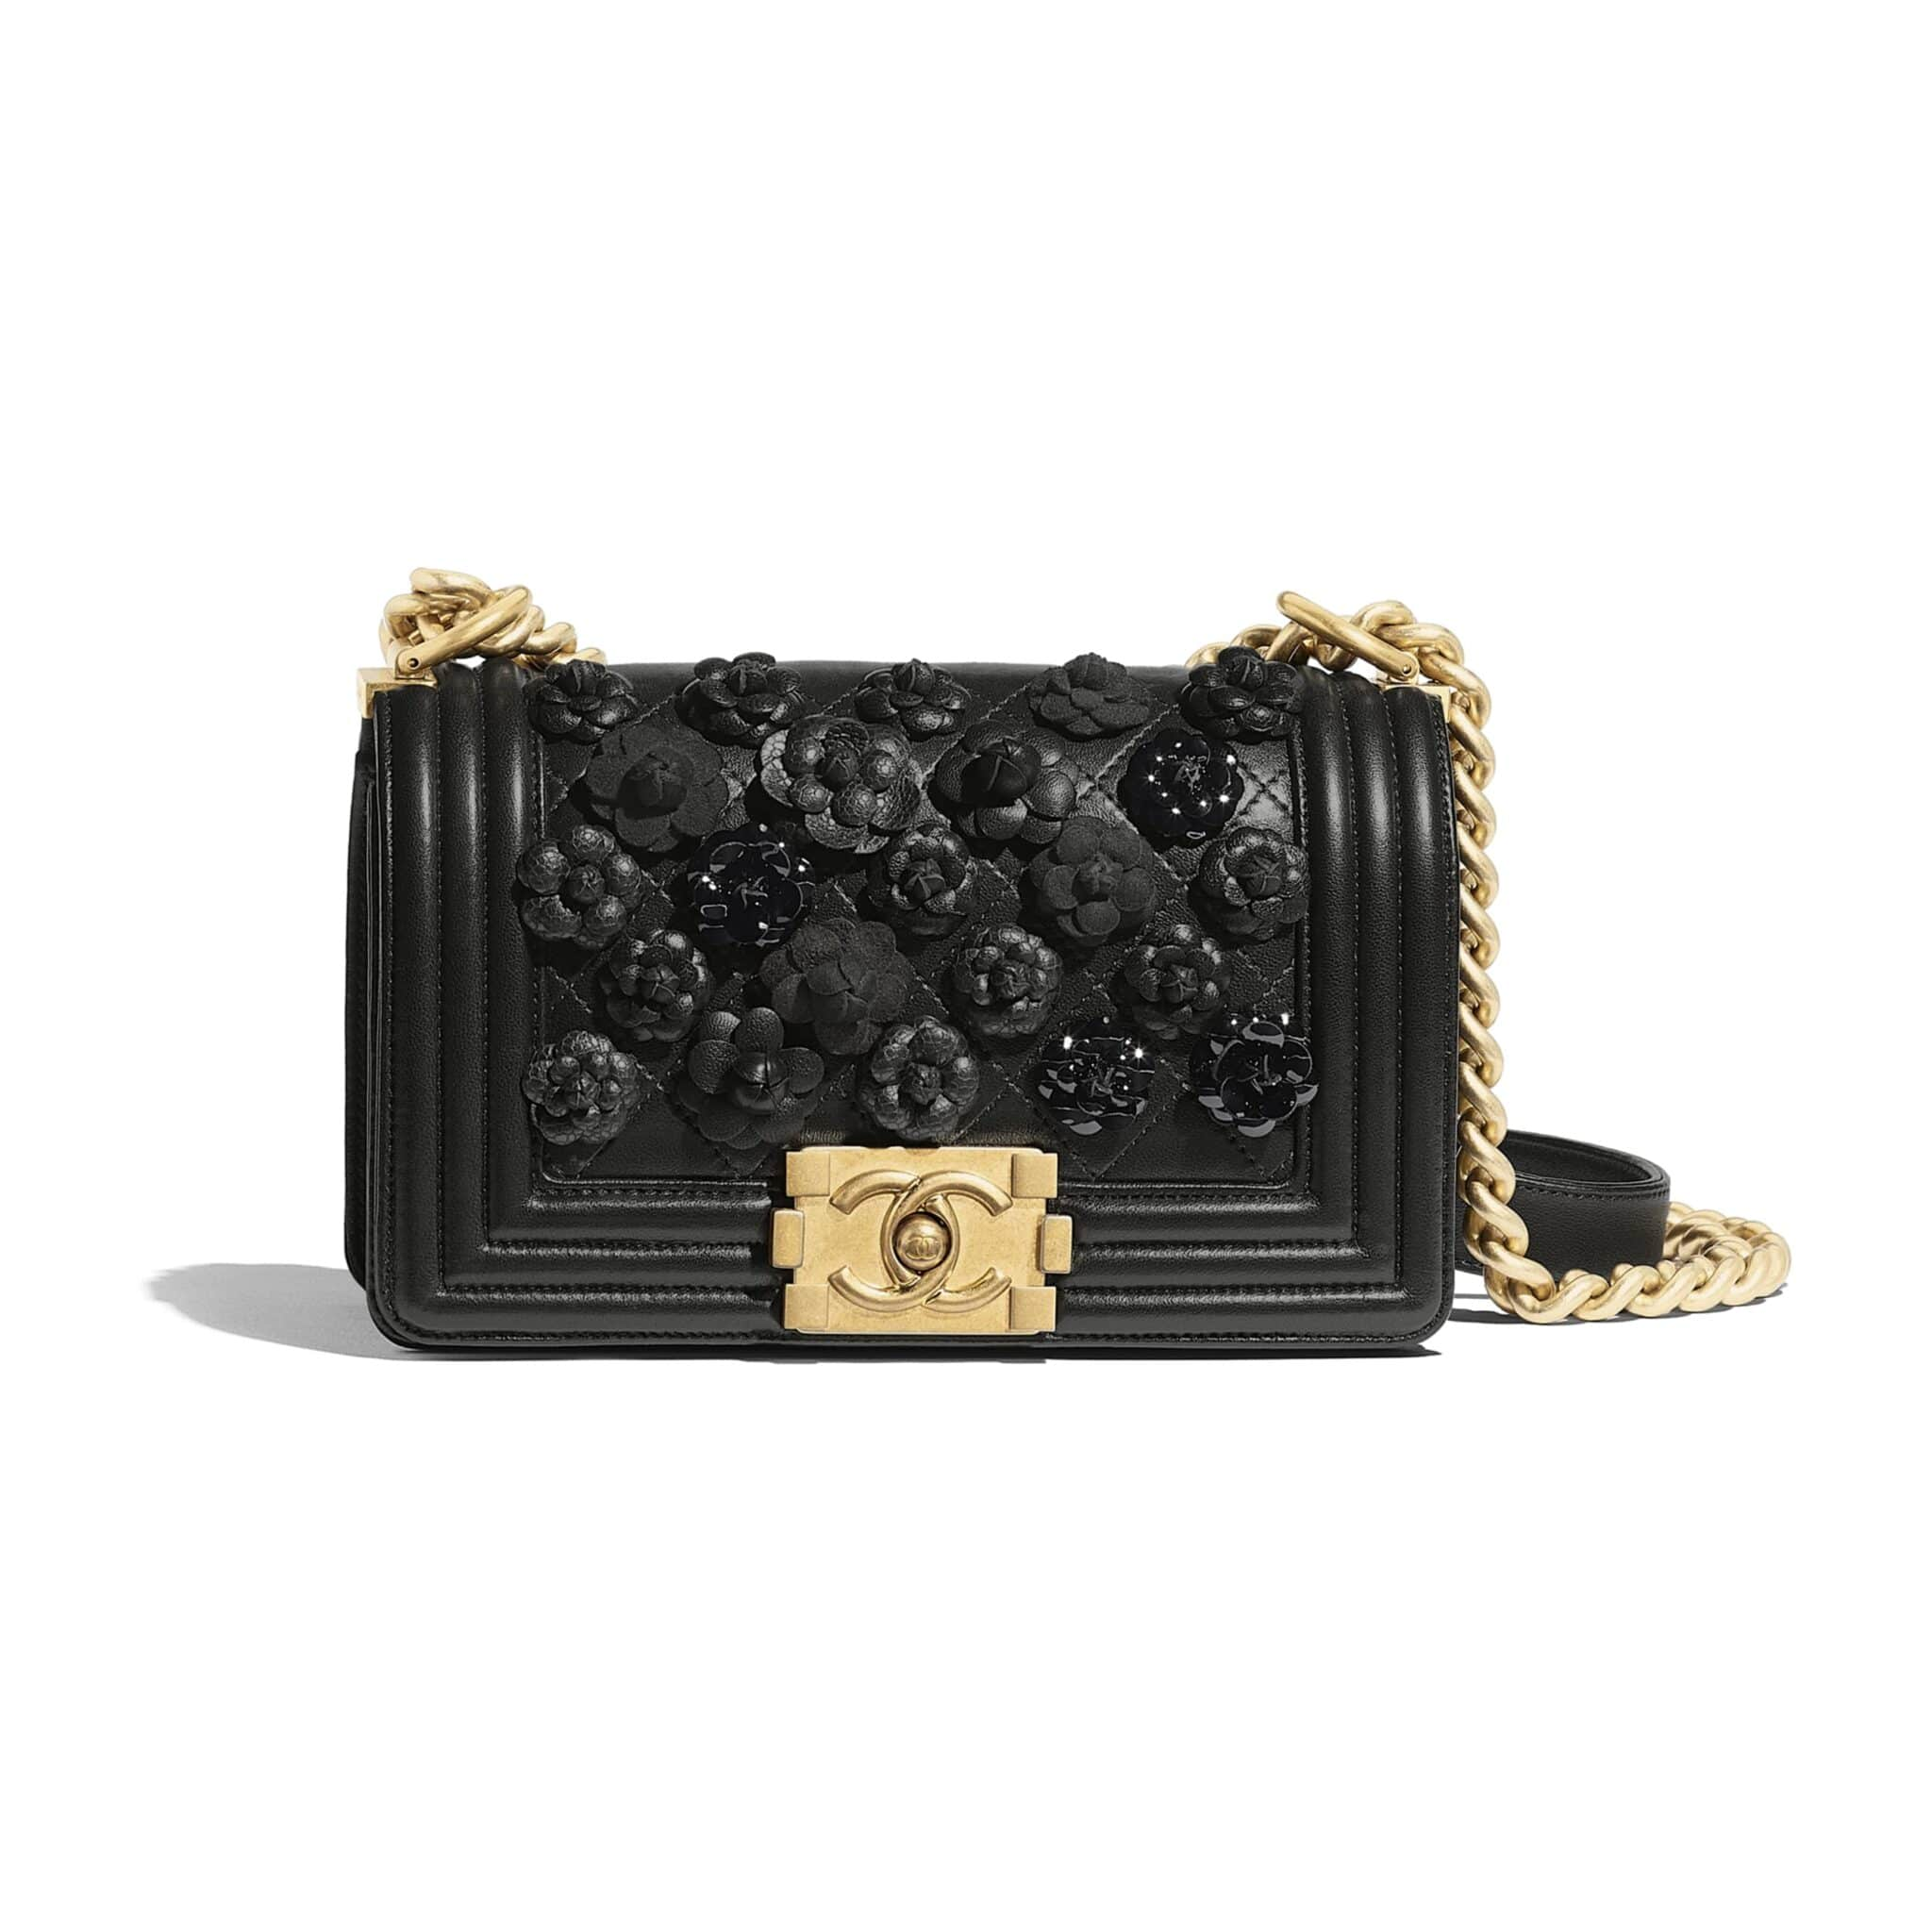 a12545bb5edf Chanel Black Camellia Embroidered Lambskin Boy Chanel Small Flap Bag